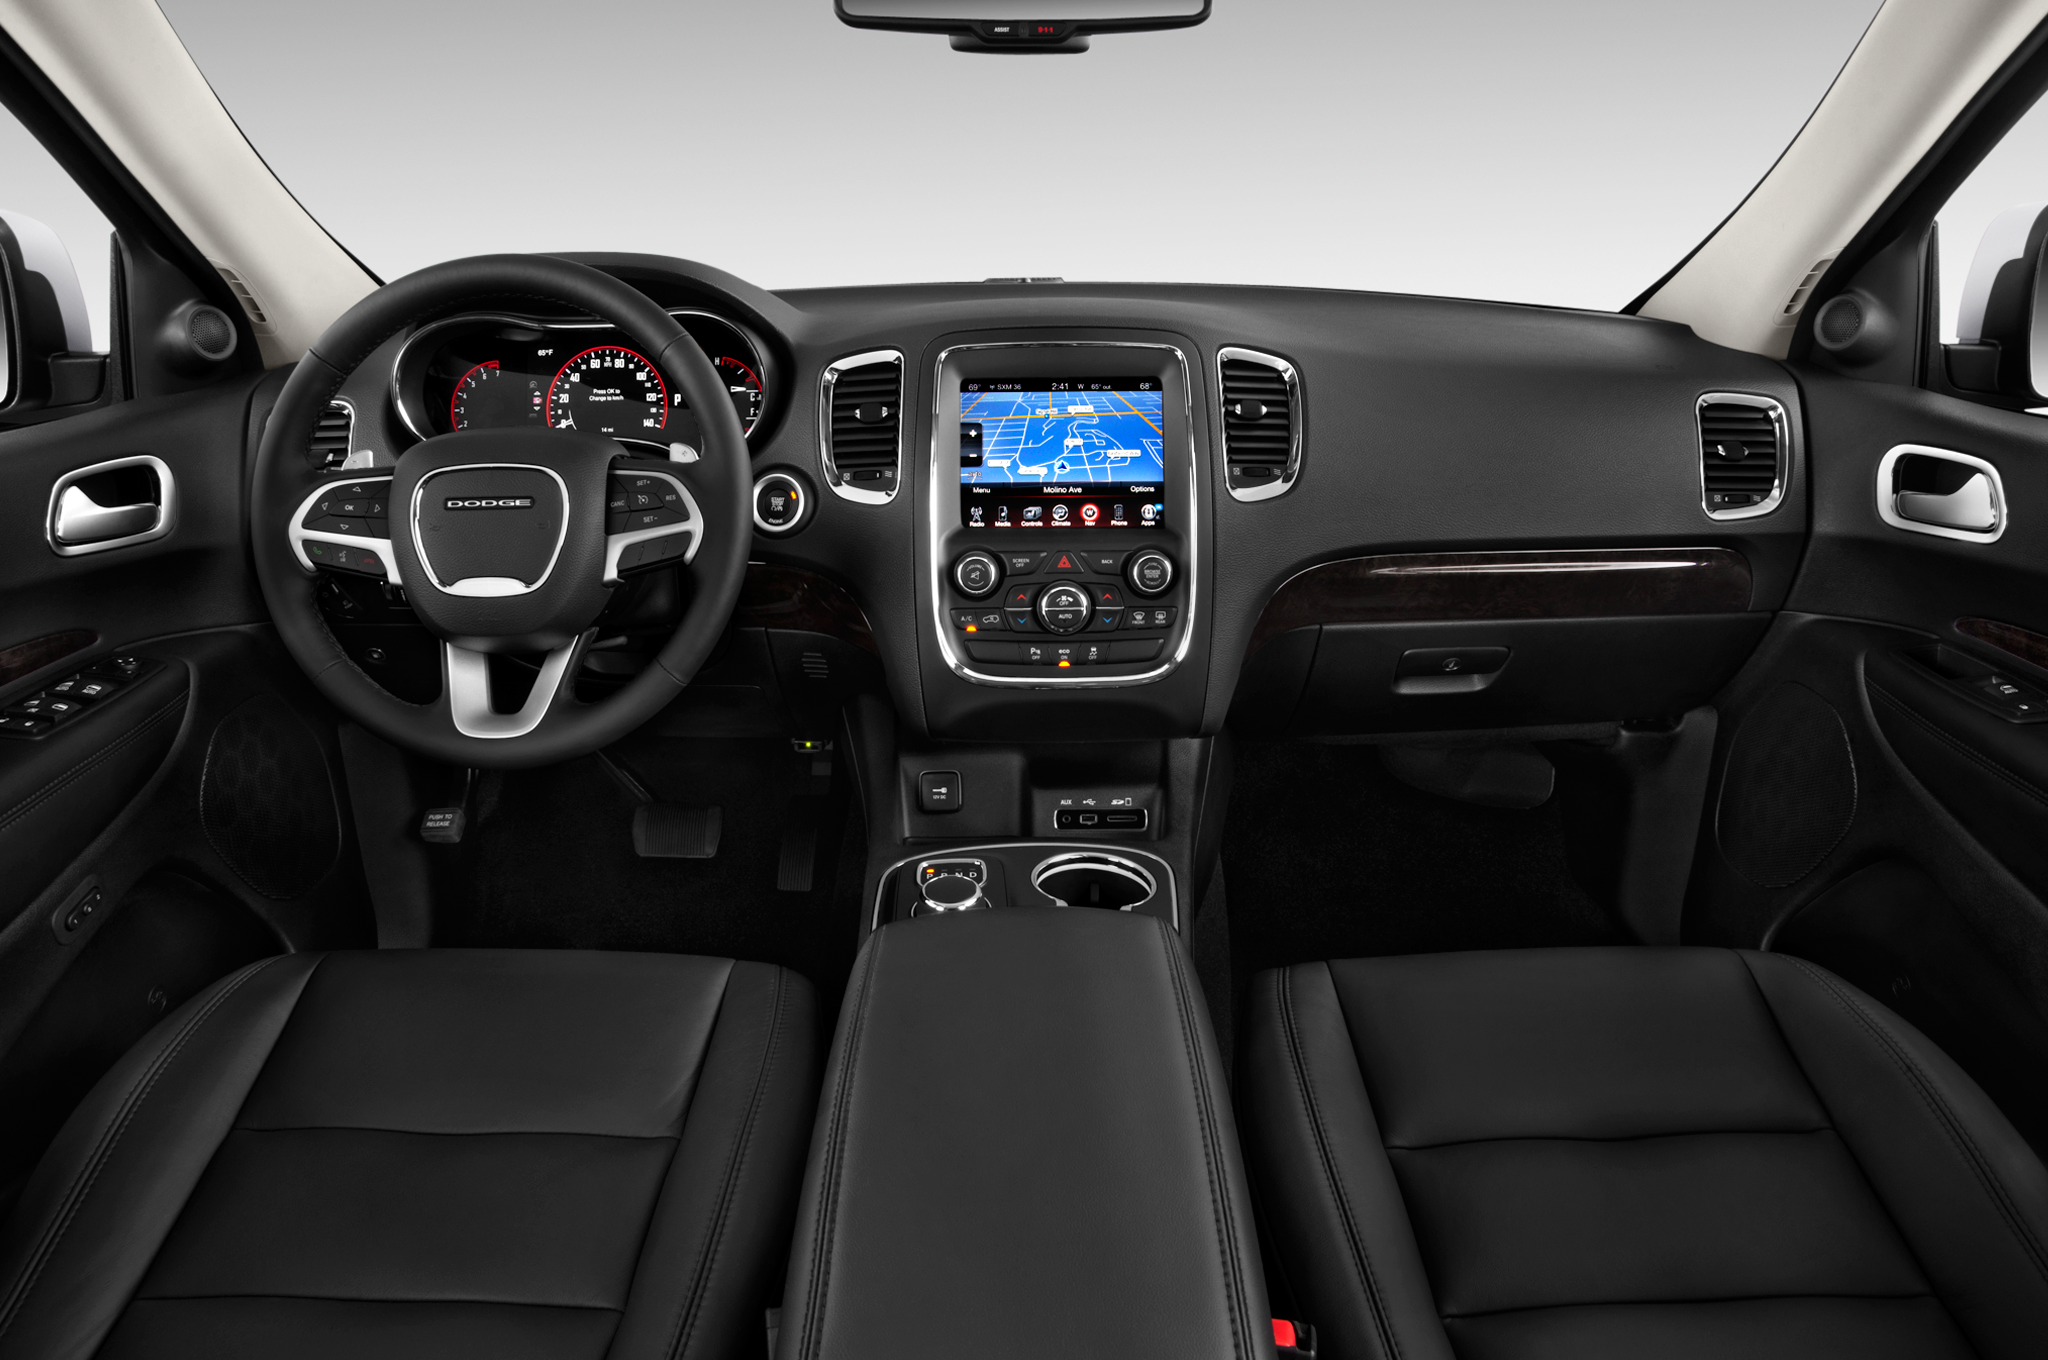 High Quality Slide 1 Of 11: 2015 Dodge Durango Good Ideas